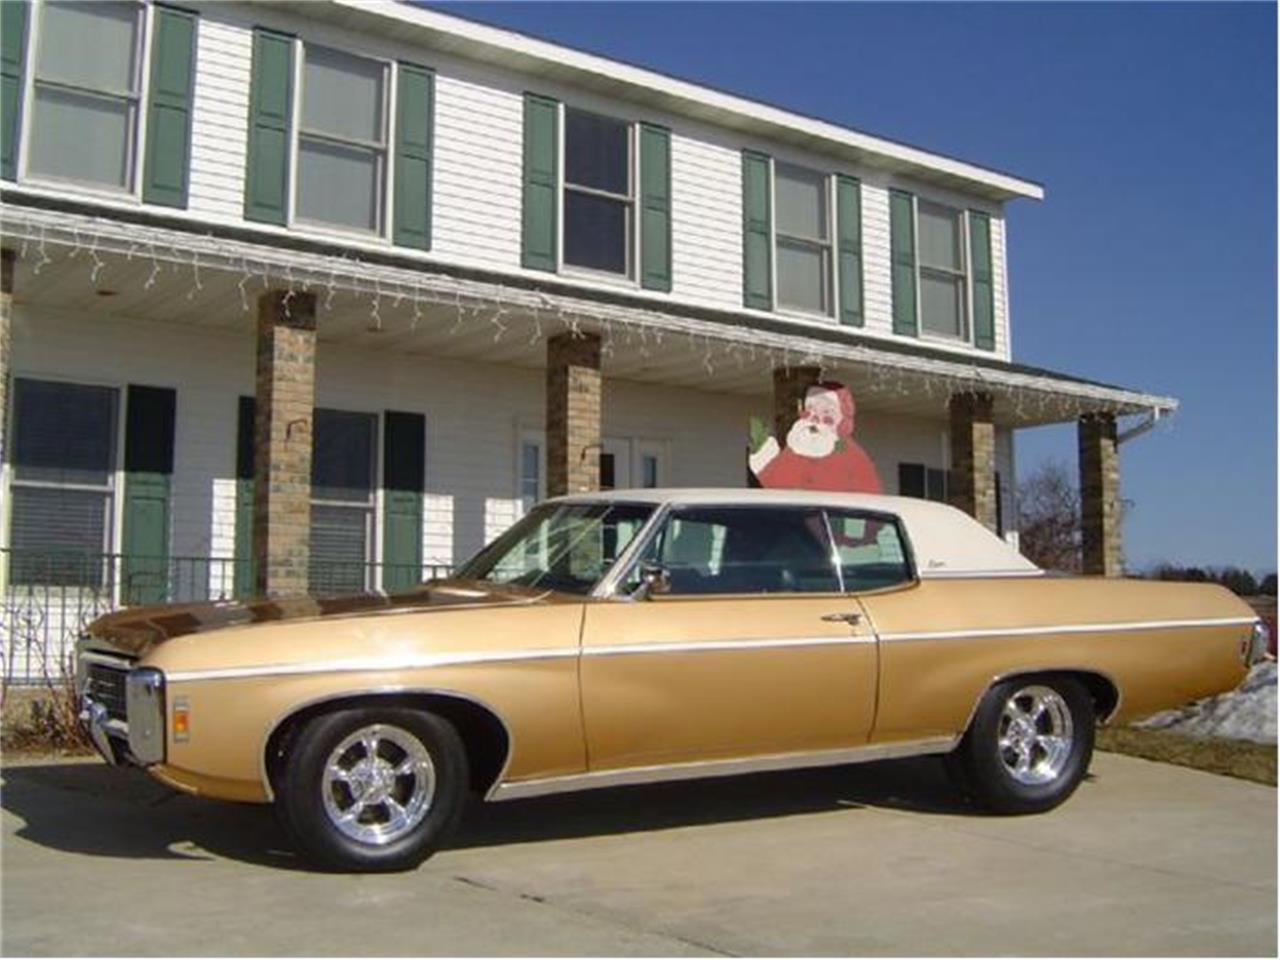 Large Picture of '69 Caprice - $29,999.00 - 1DN4